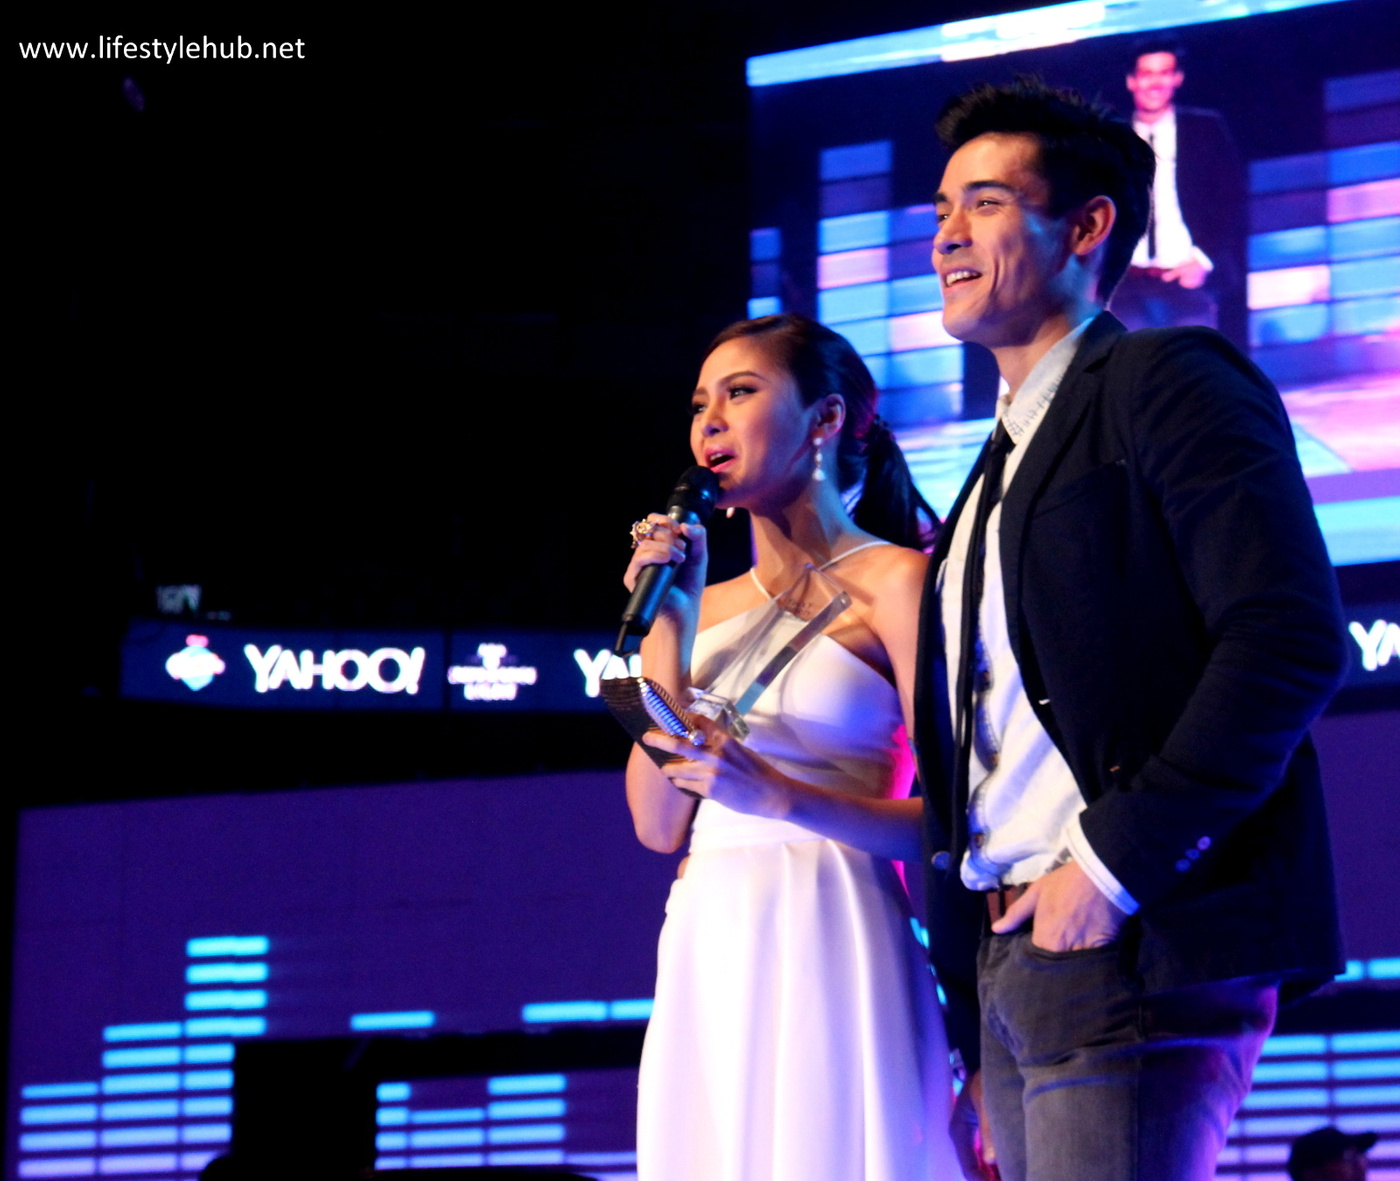 kim chiu and xian lim at the yahoo awards